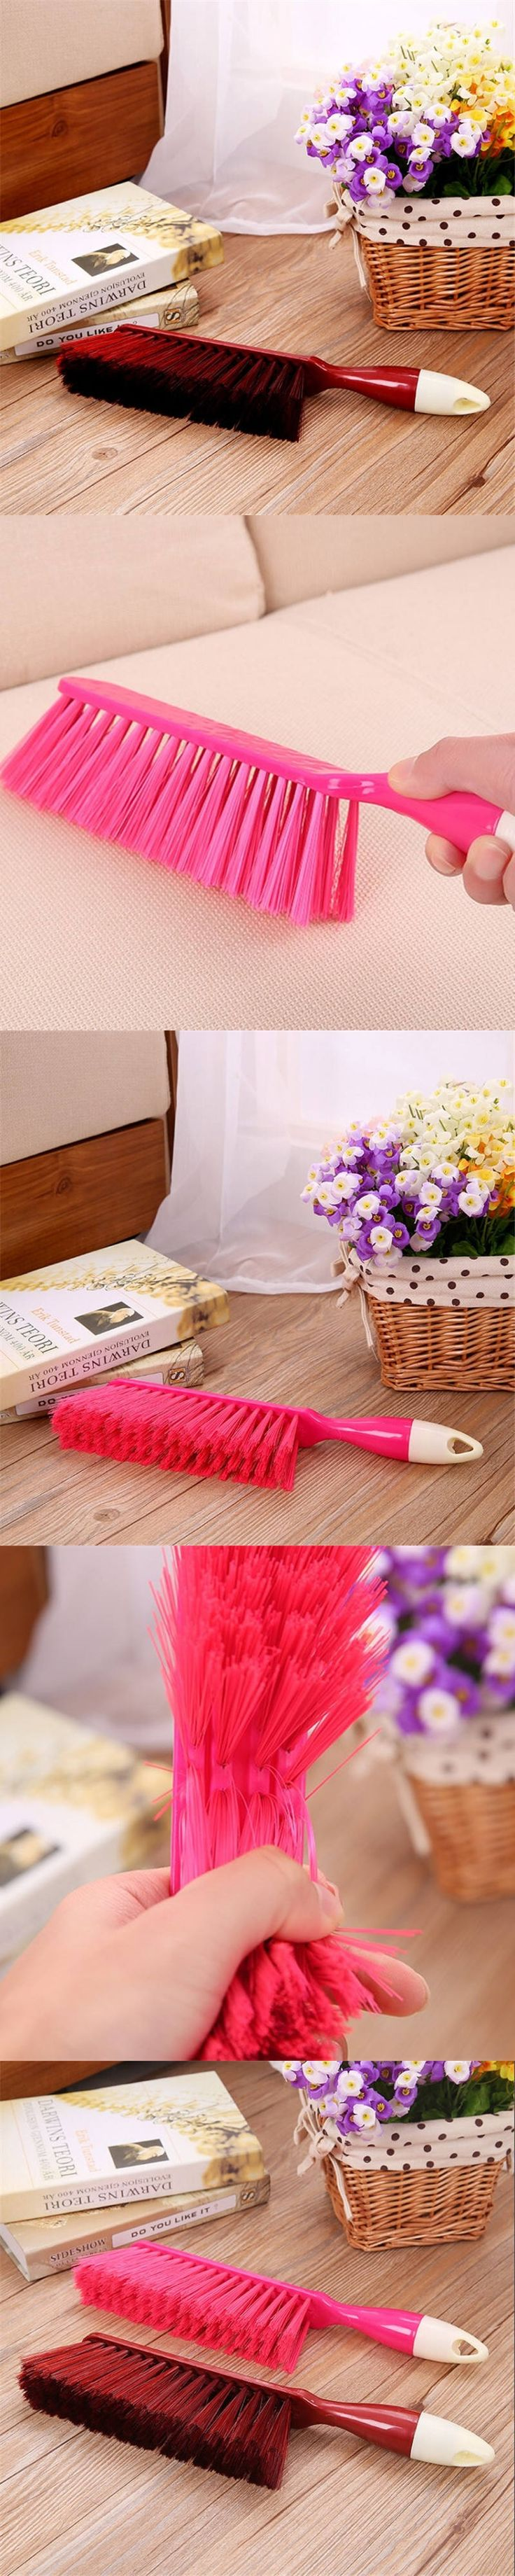 DoreenBeads Multiuse ABS Cleaning Brush 10*4.5*3.5cm with Handle Computer Sofa Bed Clothes Desk Household Dust Removal Tool 1PC